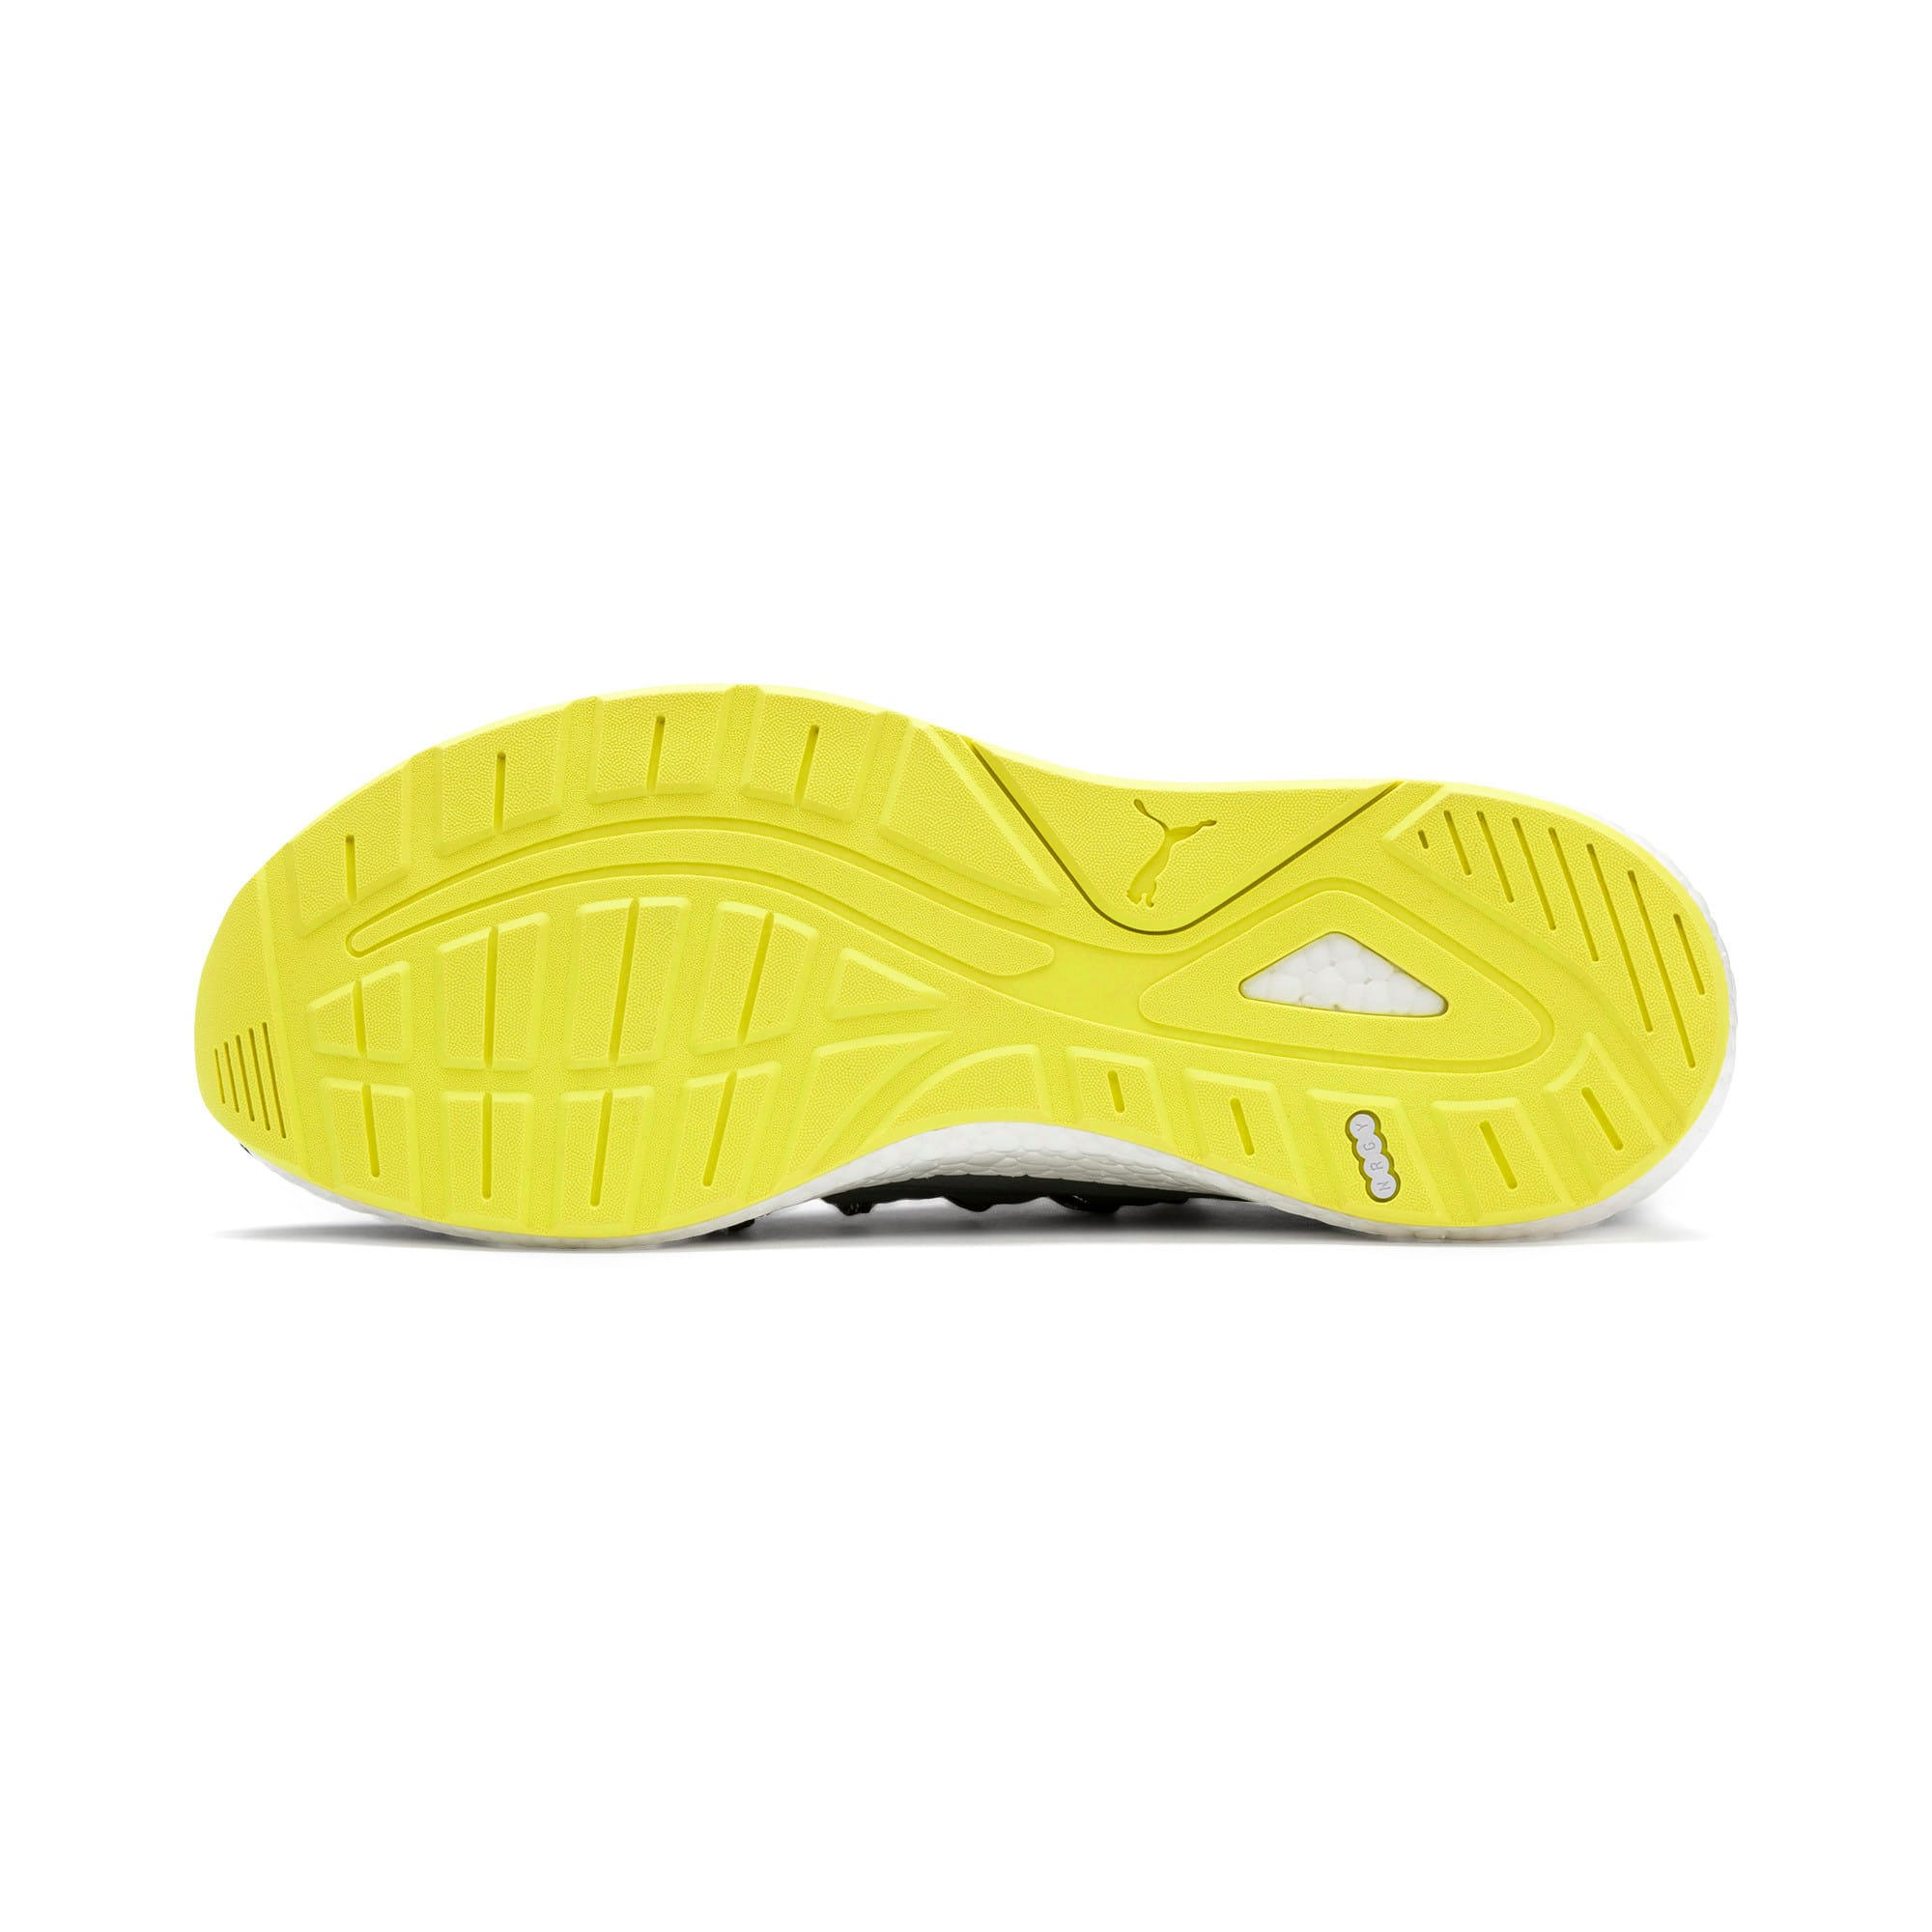 Thumbnail 5 of NRGY Neko Lights hardloopschoenen voor heren, CASTLEROCK-Yellow Alert, medium